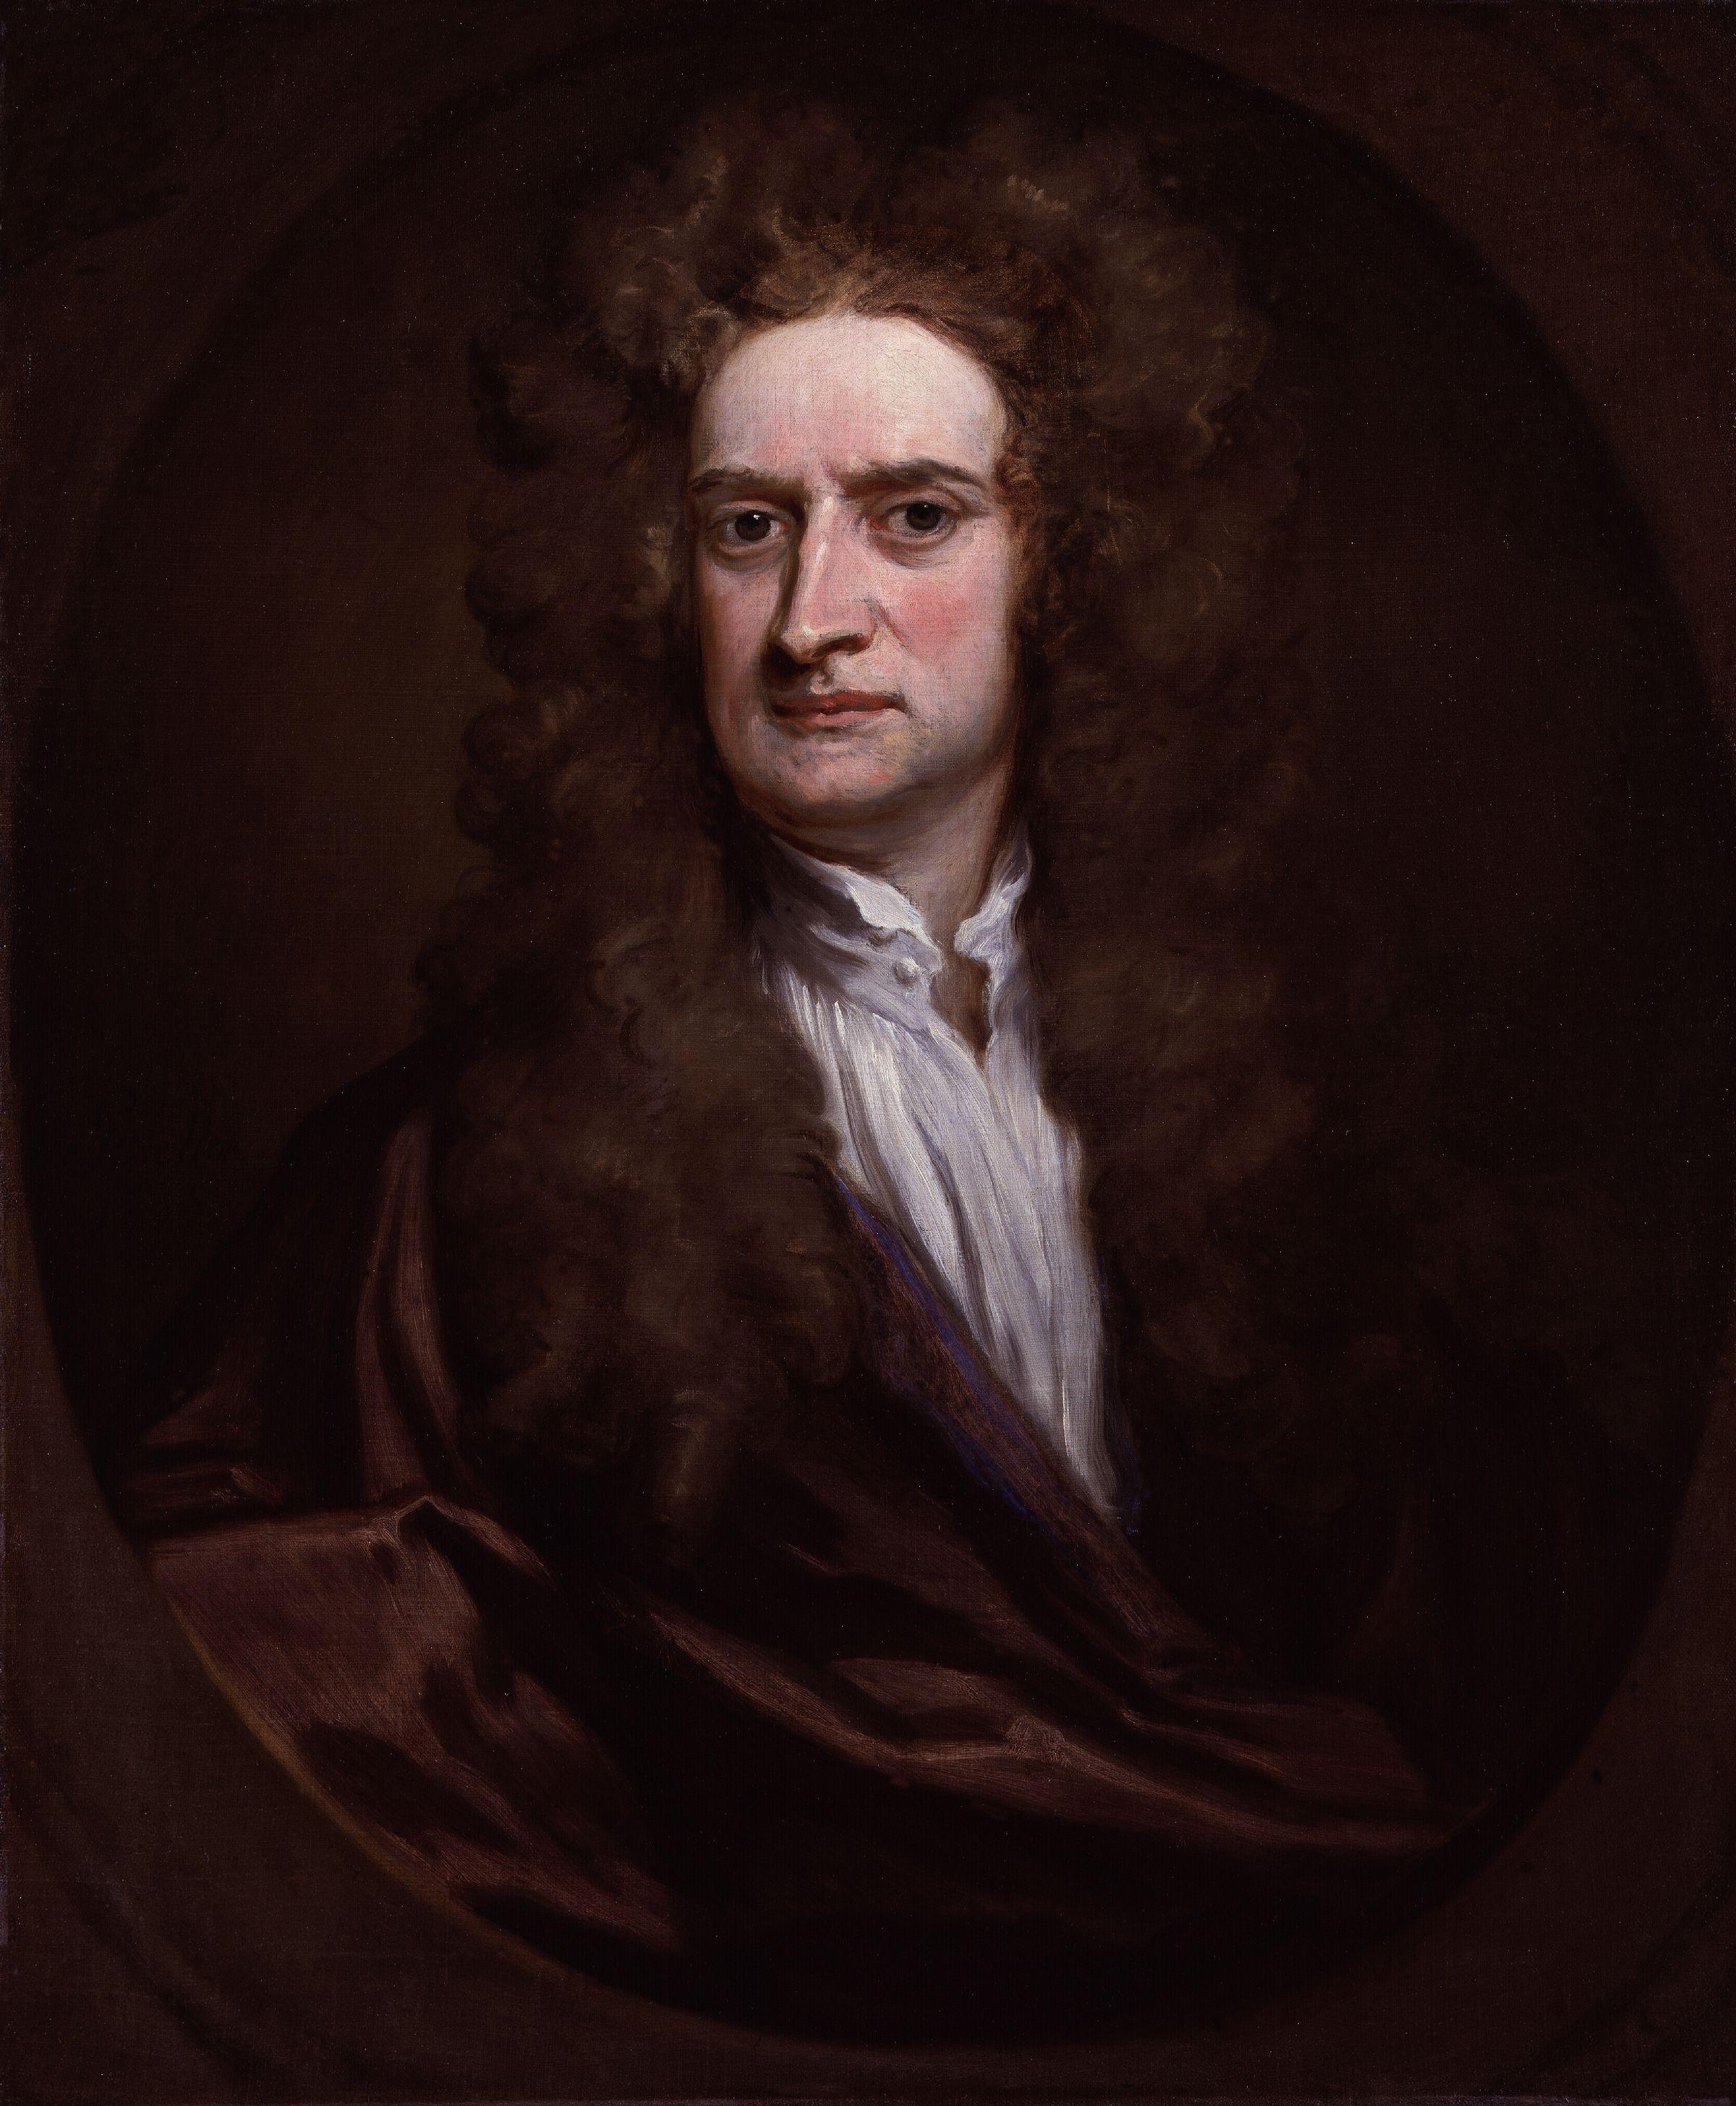 Portrait of Sir Isaac Newton, Godfrey Kneller, 1702